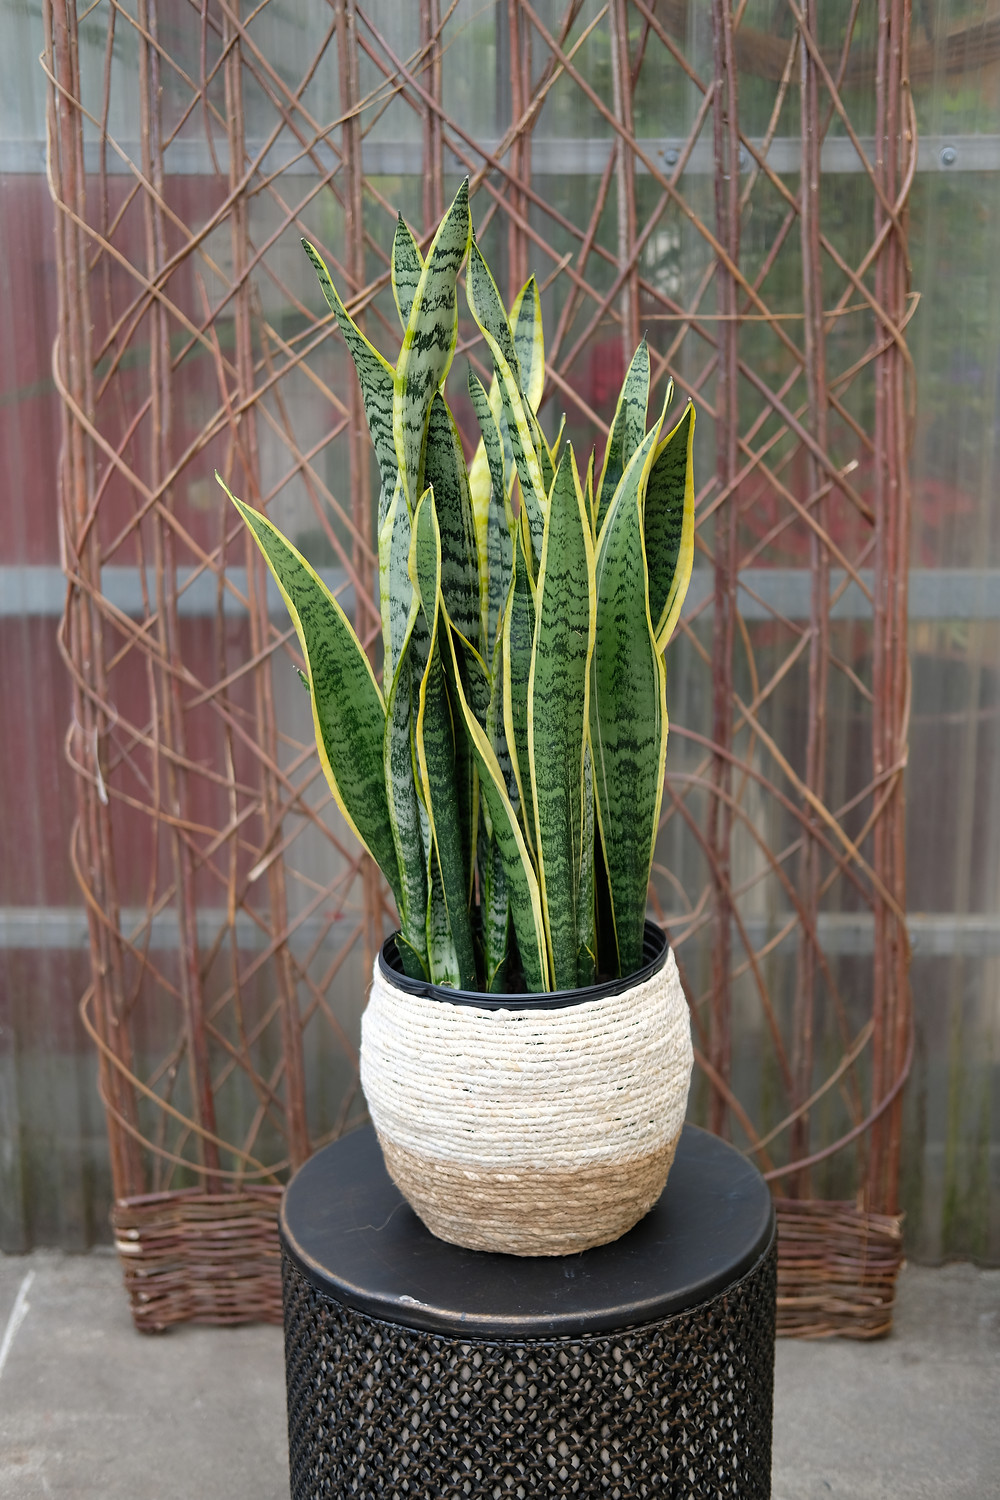 Sansevieria trifasciata 'Laurentii' - green and yellow houseplant in a basket